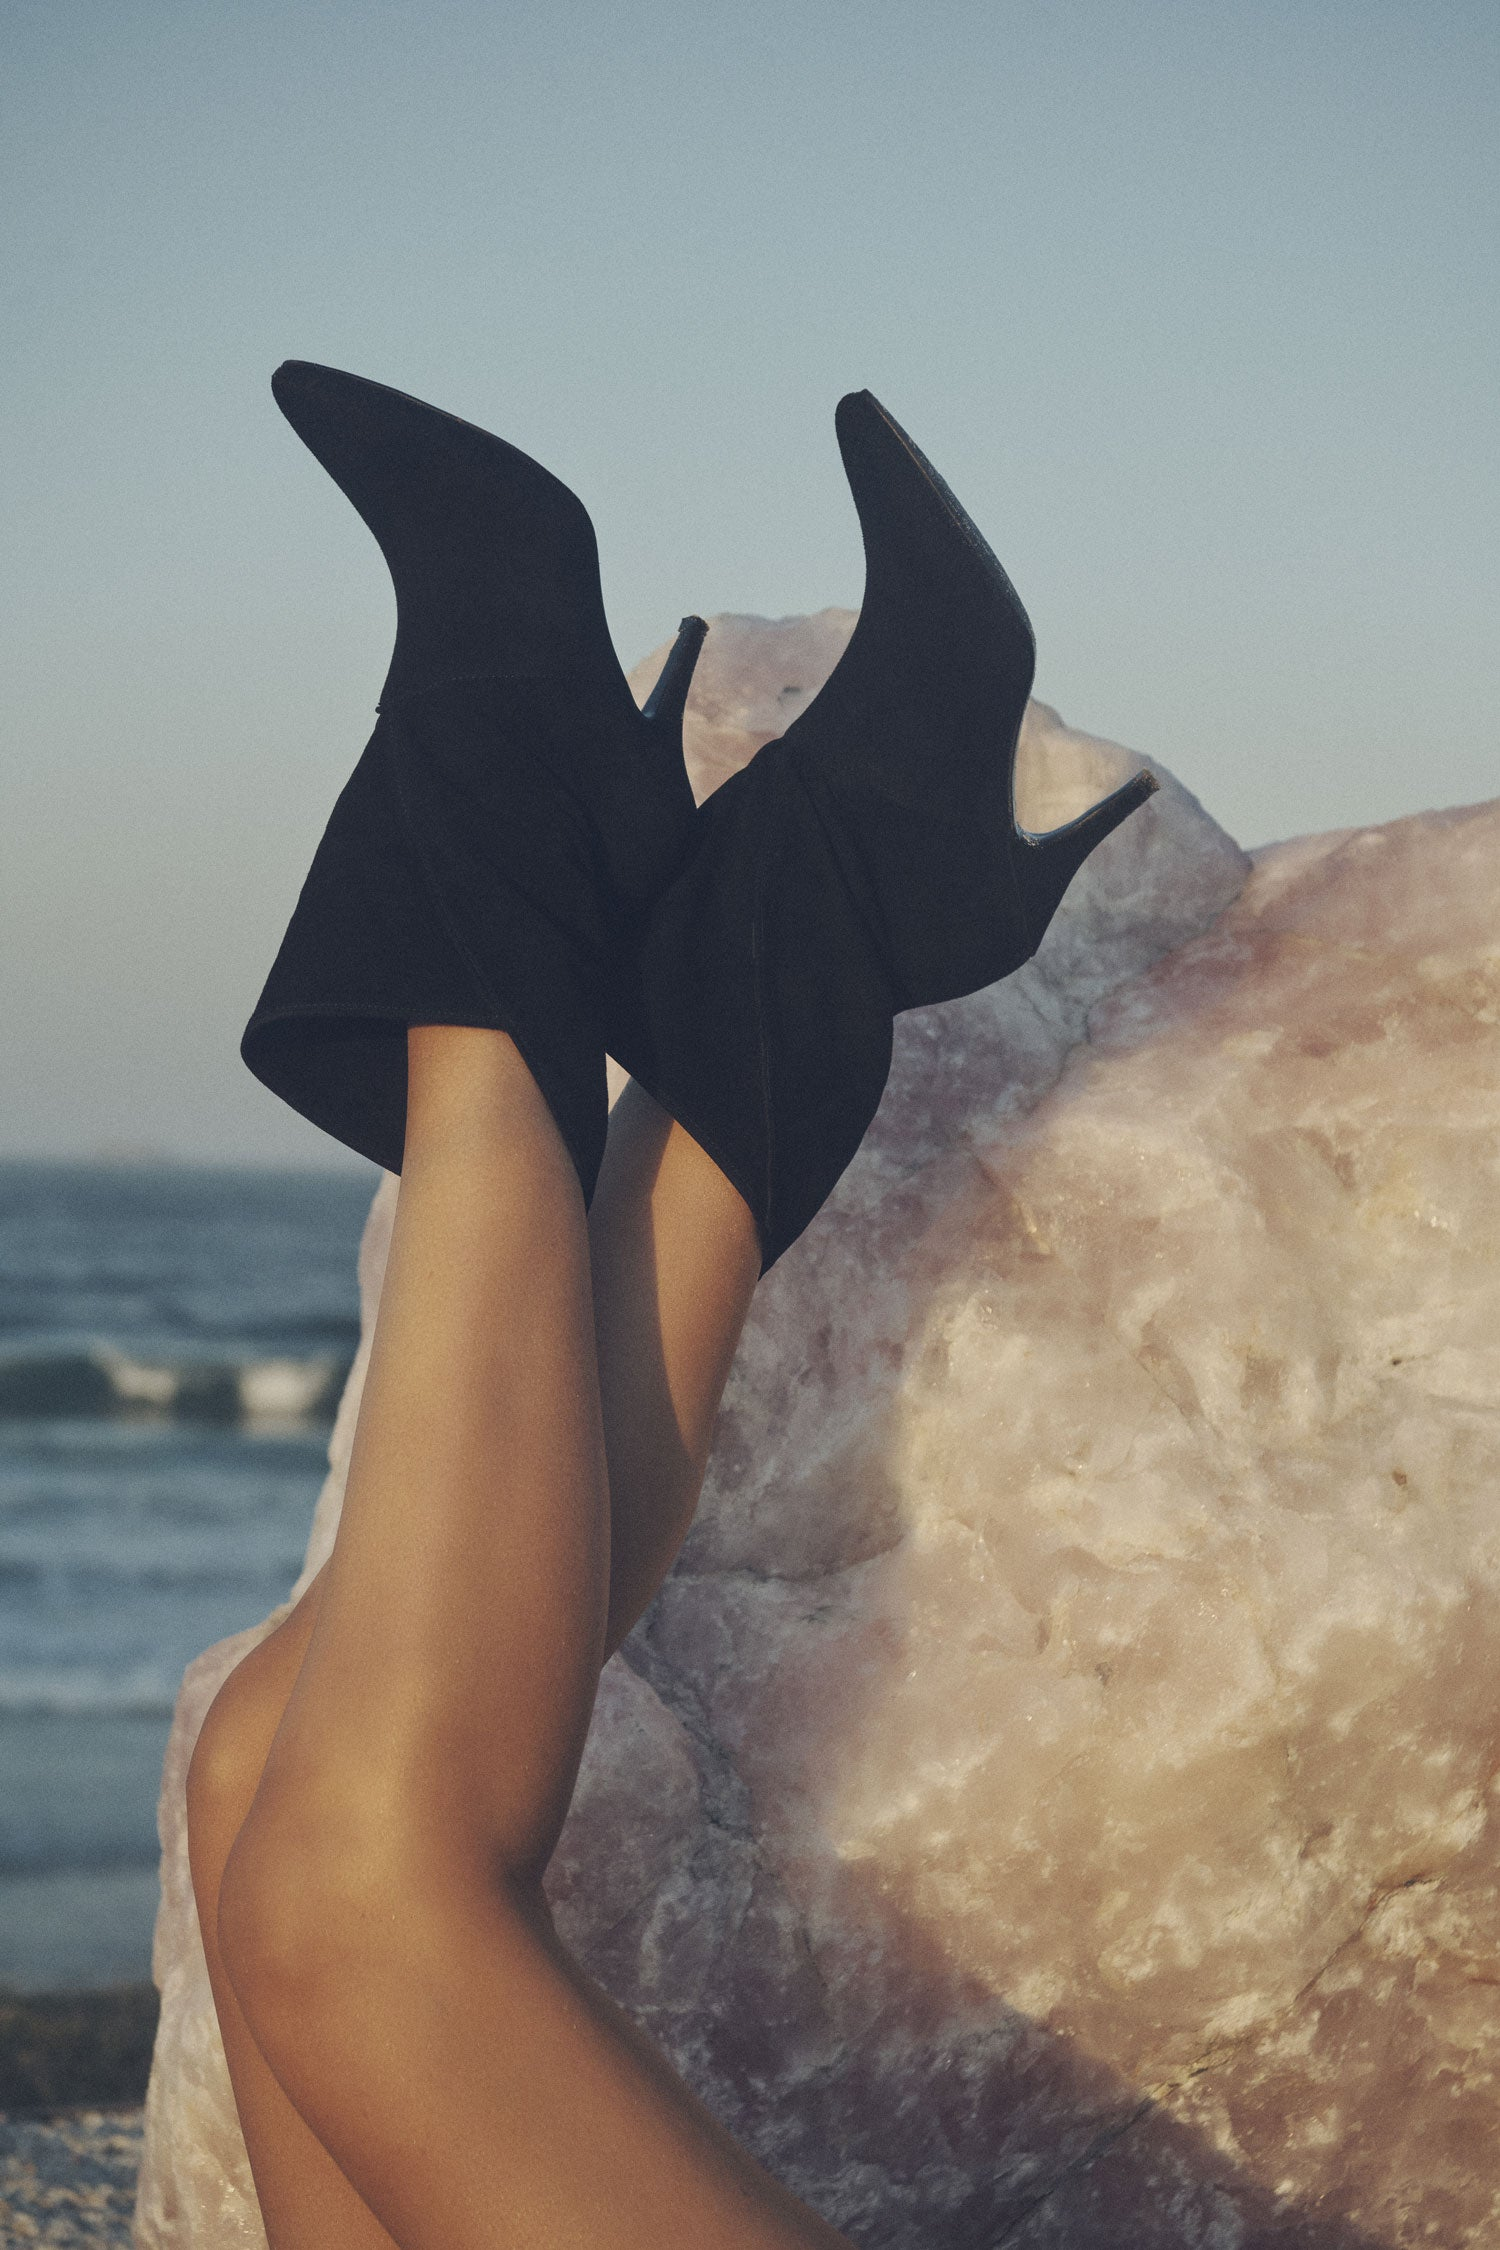 A close- up image of the Spell black Cult Suede Boots, featuring a pointed toe and narrow heel, with a crystal and beach in the background.